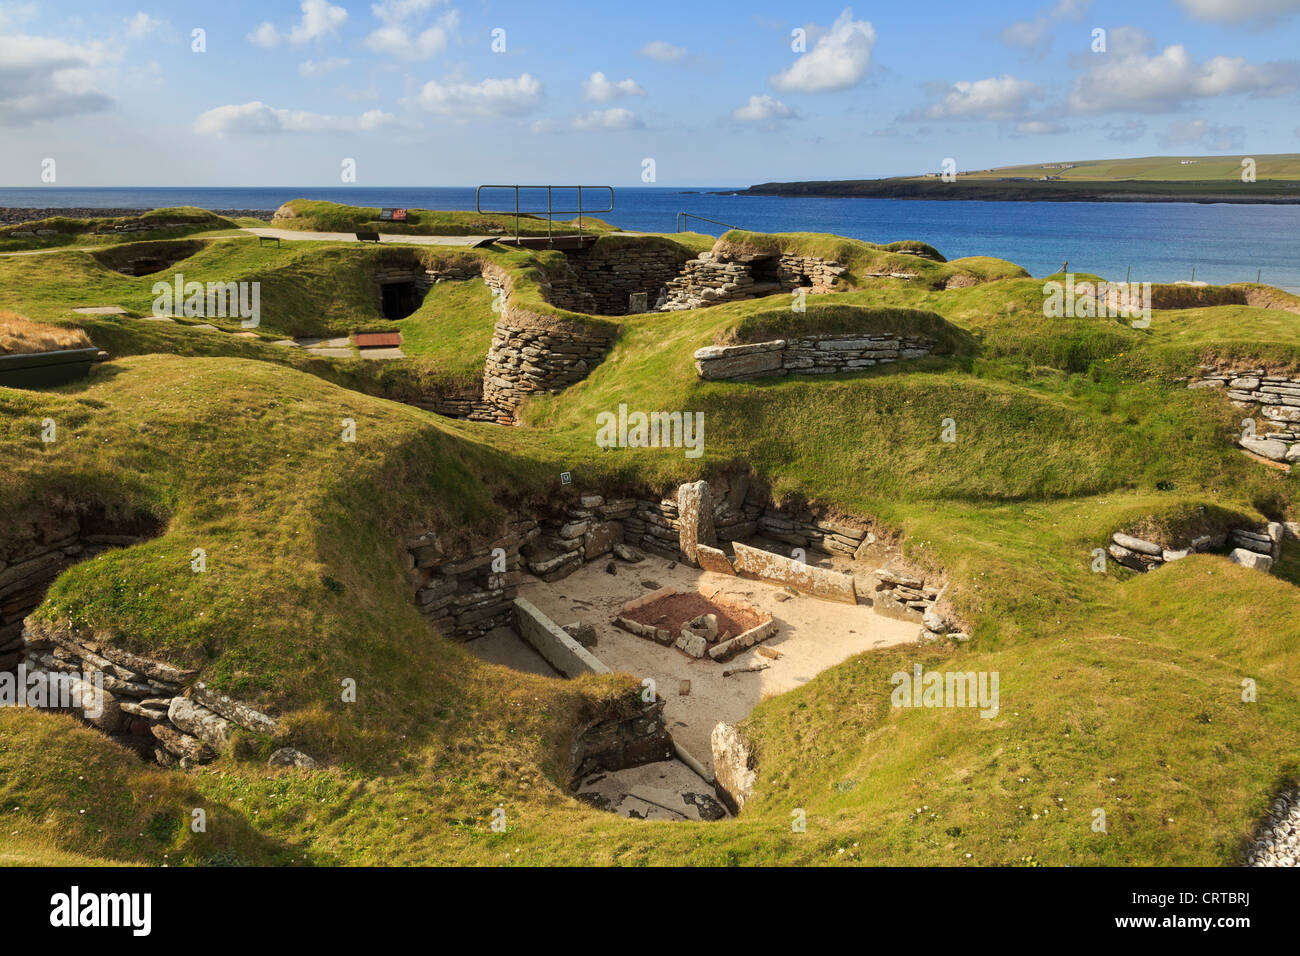 Excavations of ancient prehistoric houses in Neolithic village at Skara Brae by Bay of Skaill Orkney Islands Scotland - Stock Image